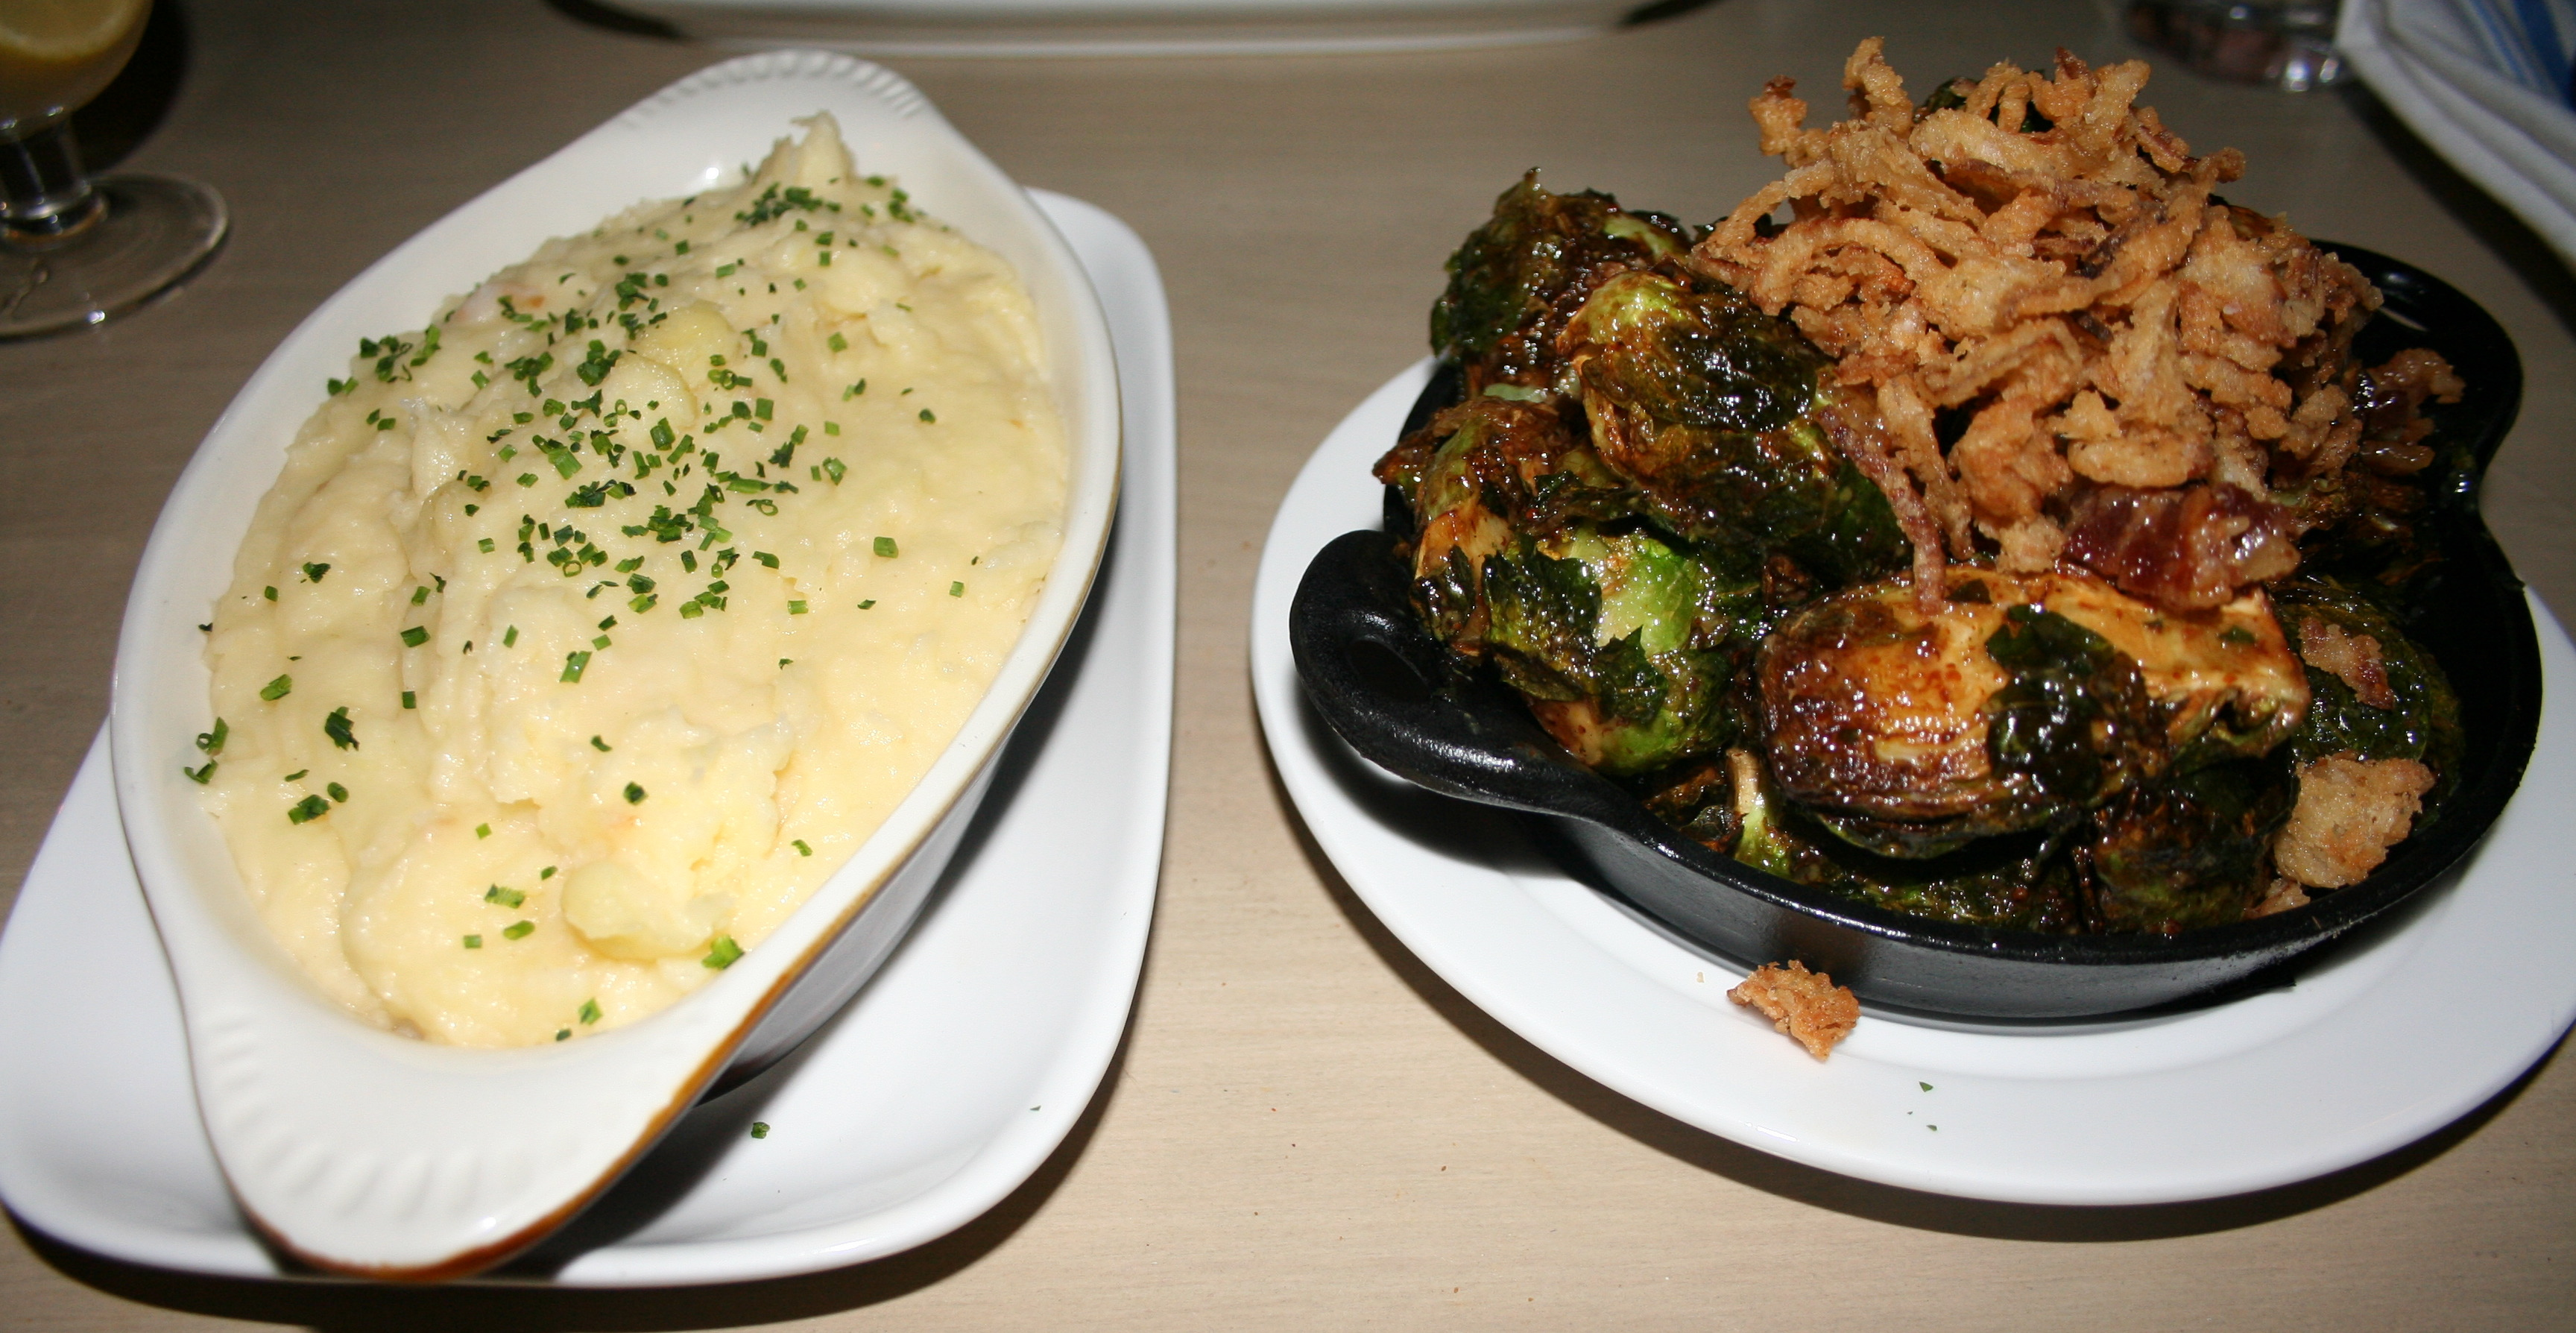 Second State sides include gouda mashed potatoes (left) and crispy Brusses sprouts. (Photo: Mark Heckathorn/DC on Heels)